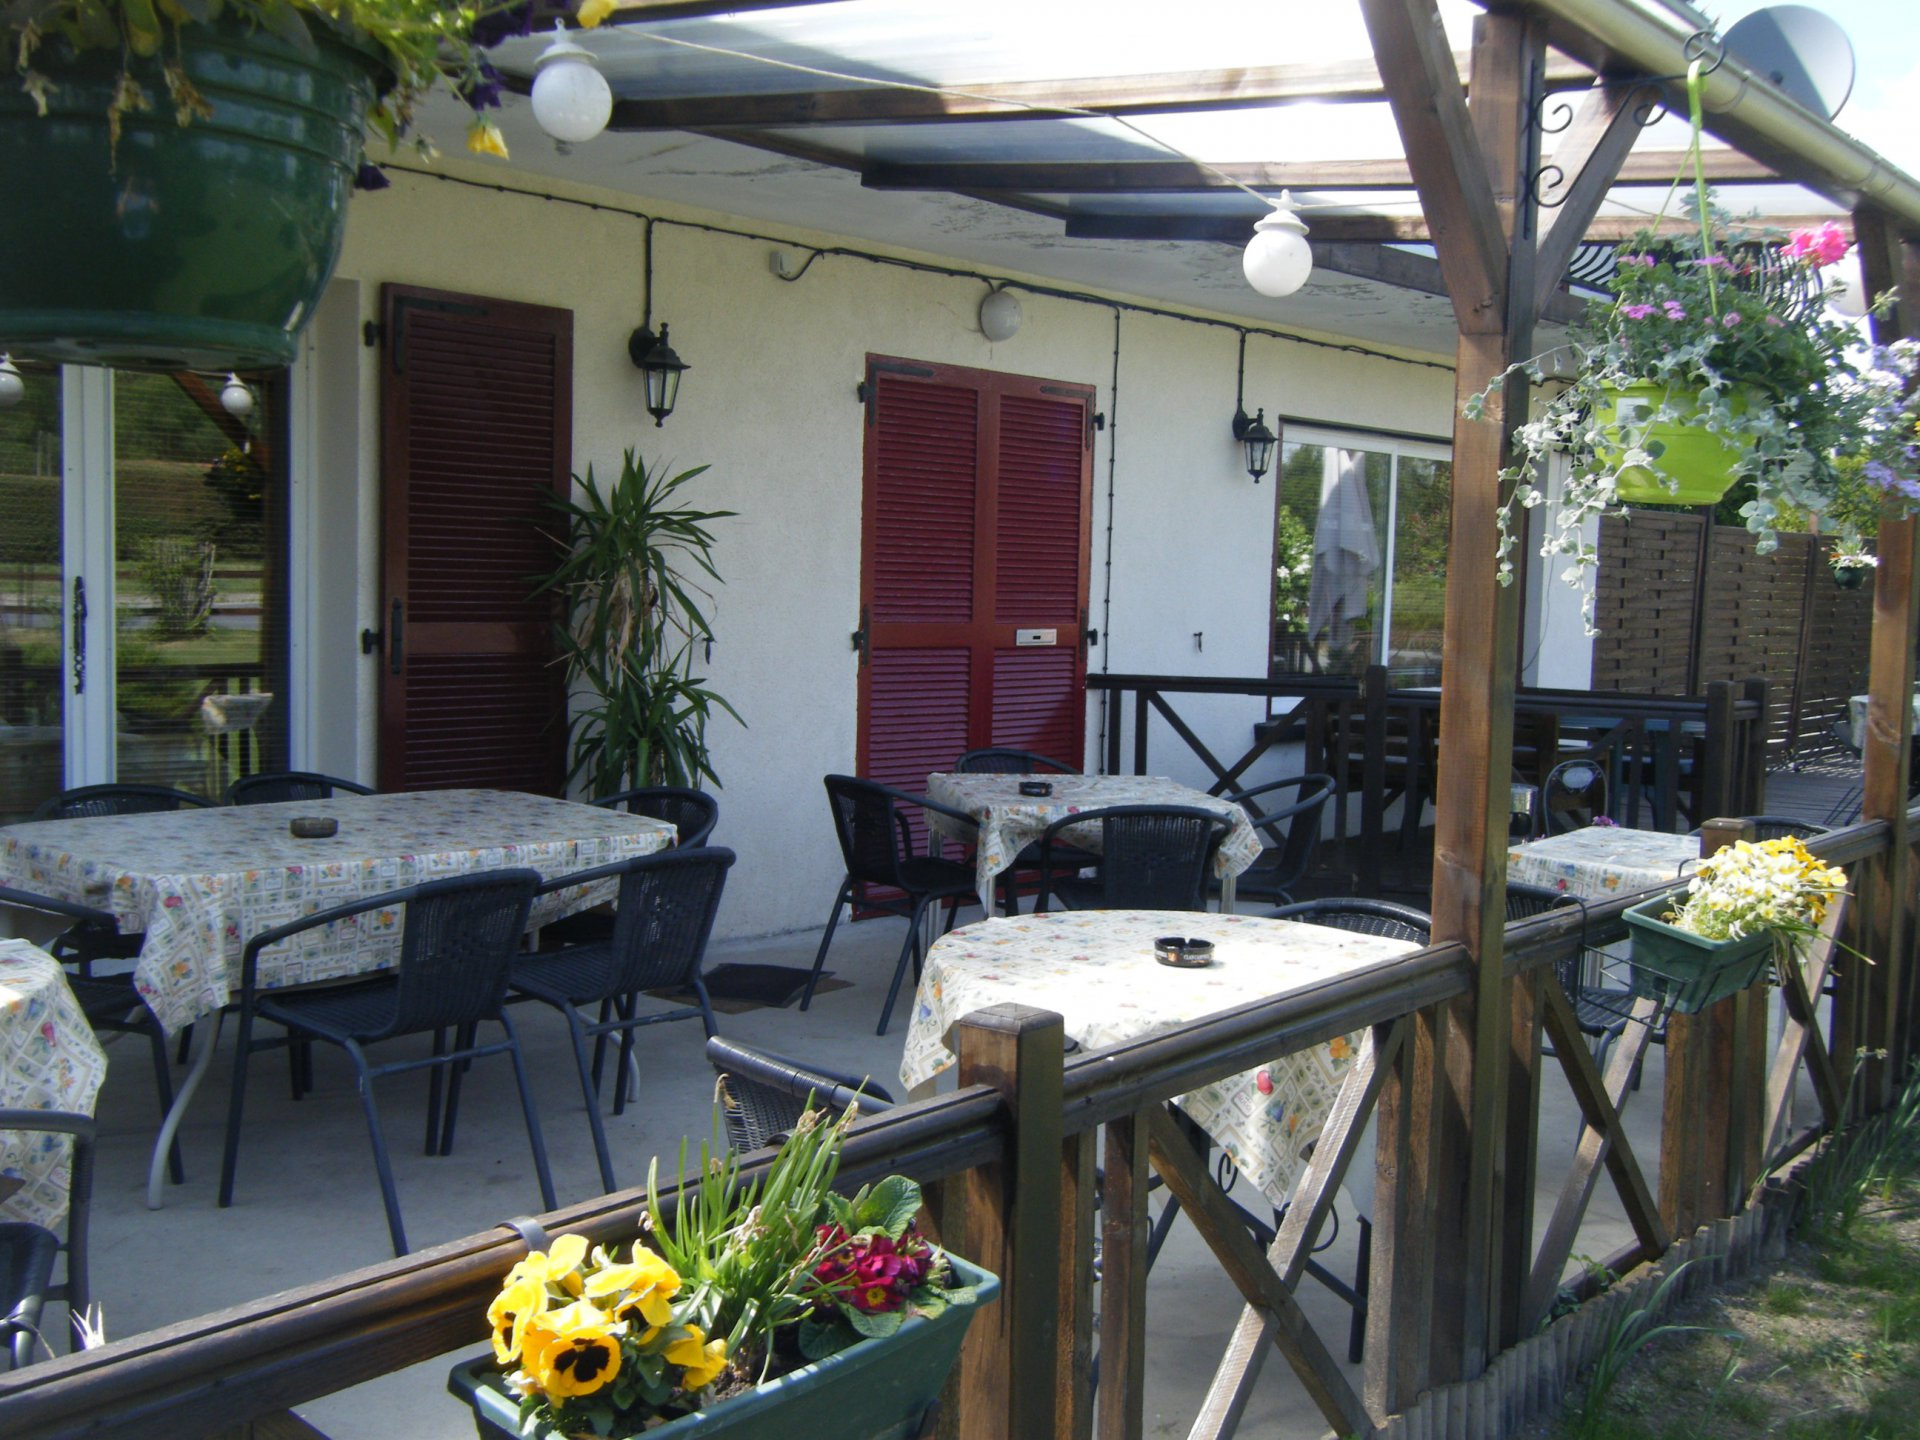 For sale in the Puy de Dôme, A Bar-Restaurant with a 3 bedroom apartment  and a garden, fully licensed.